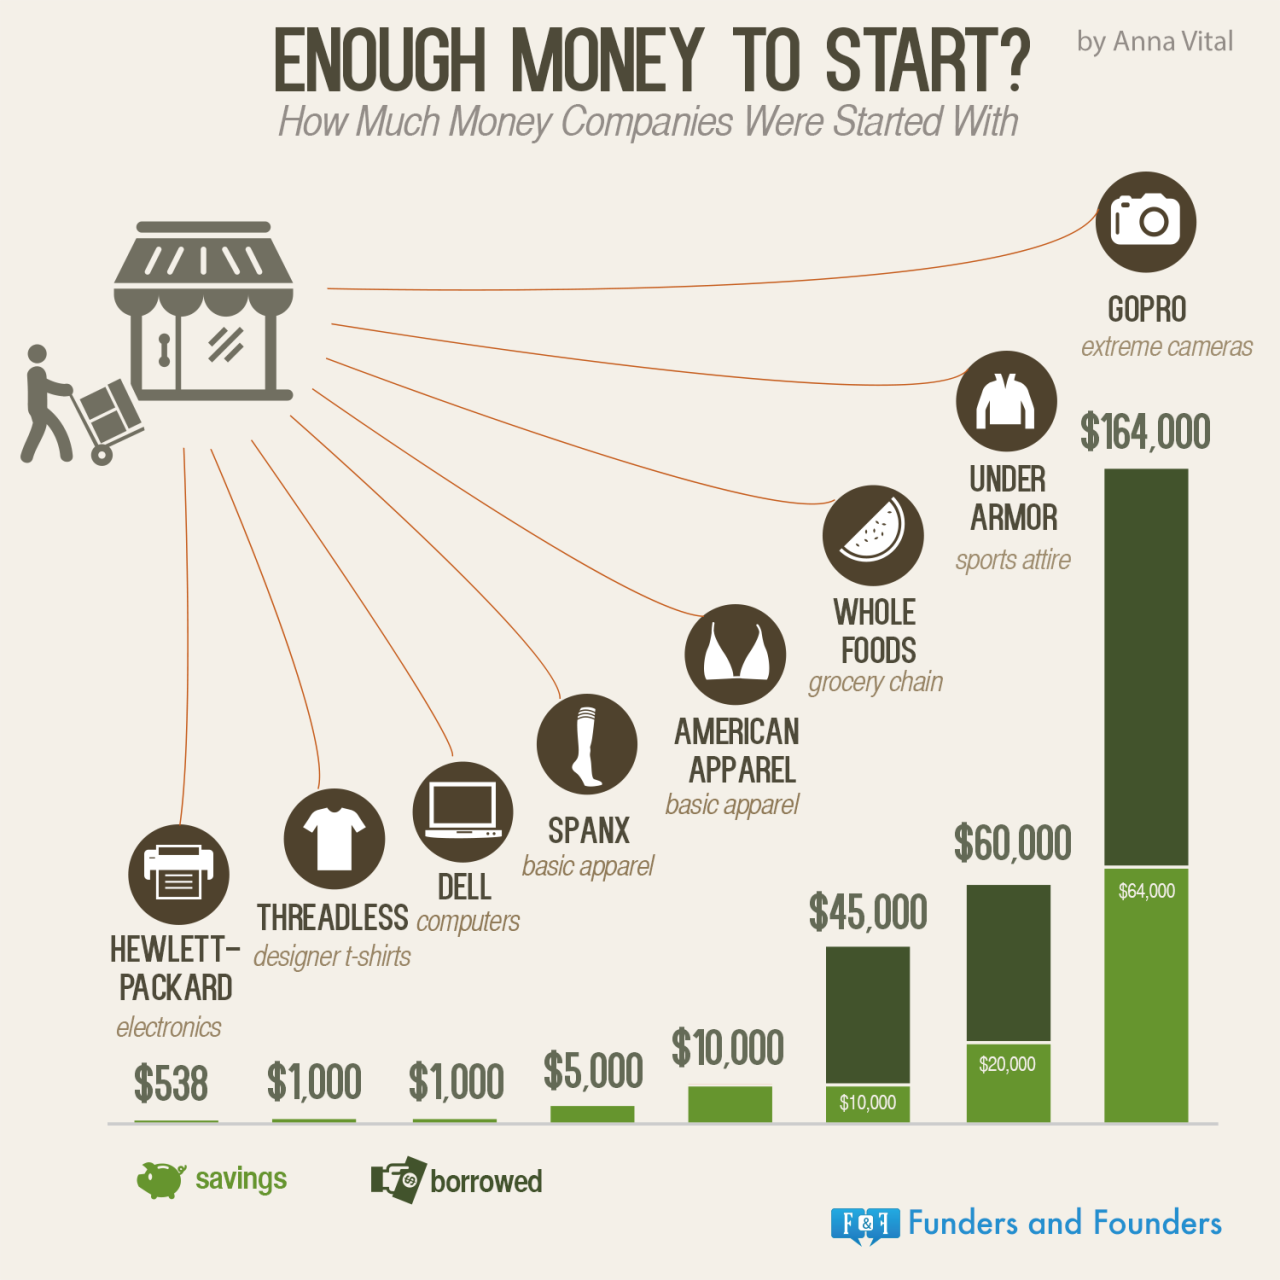 How Much Money Successful Companies Started With Pictures